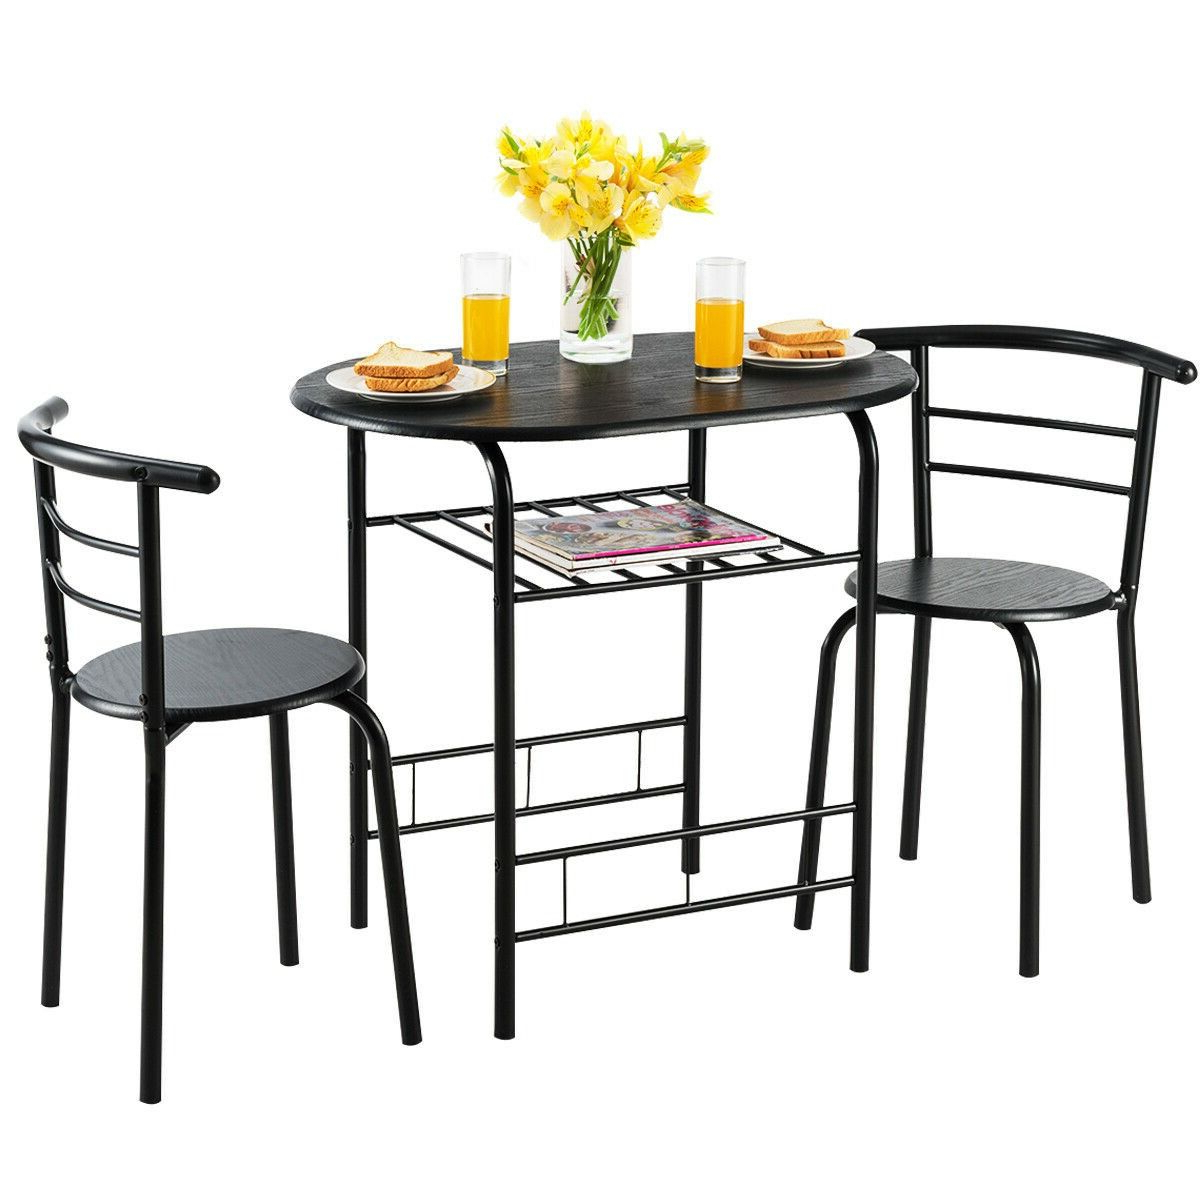 3 Pcs Home Kitchen Bistro Pub Dining Table 2 Chairs Set Regarding Popular 3 Pieces Dining Tables And Chair Set (Gallery 16 of 30)